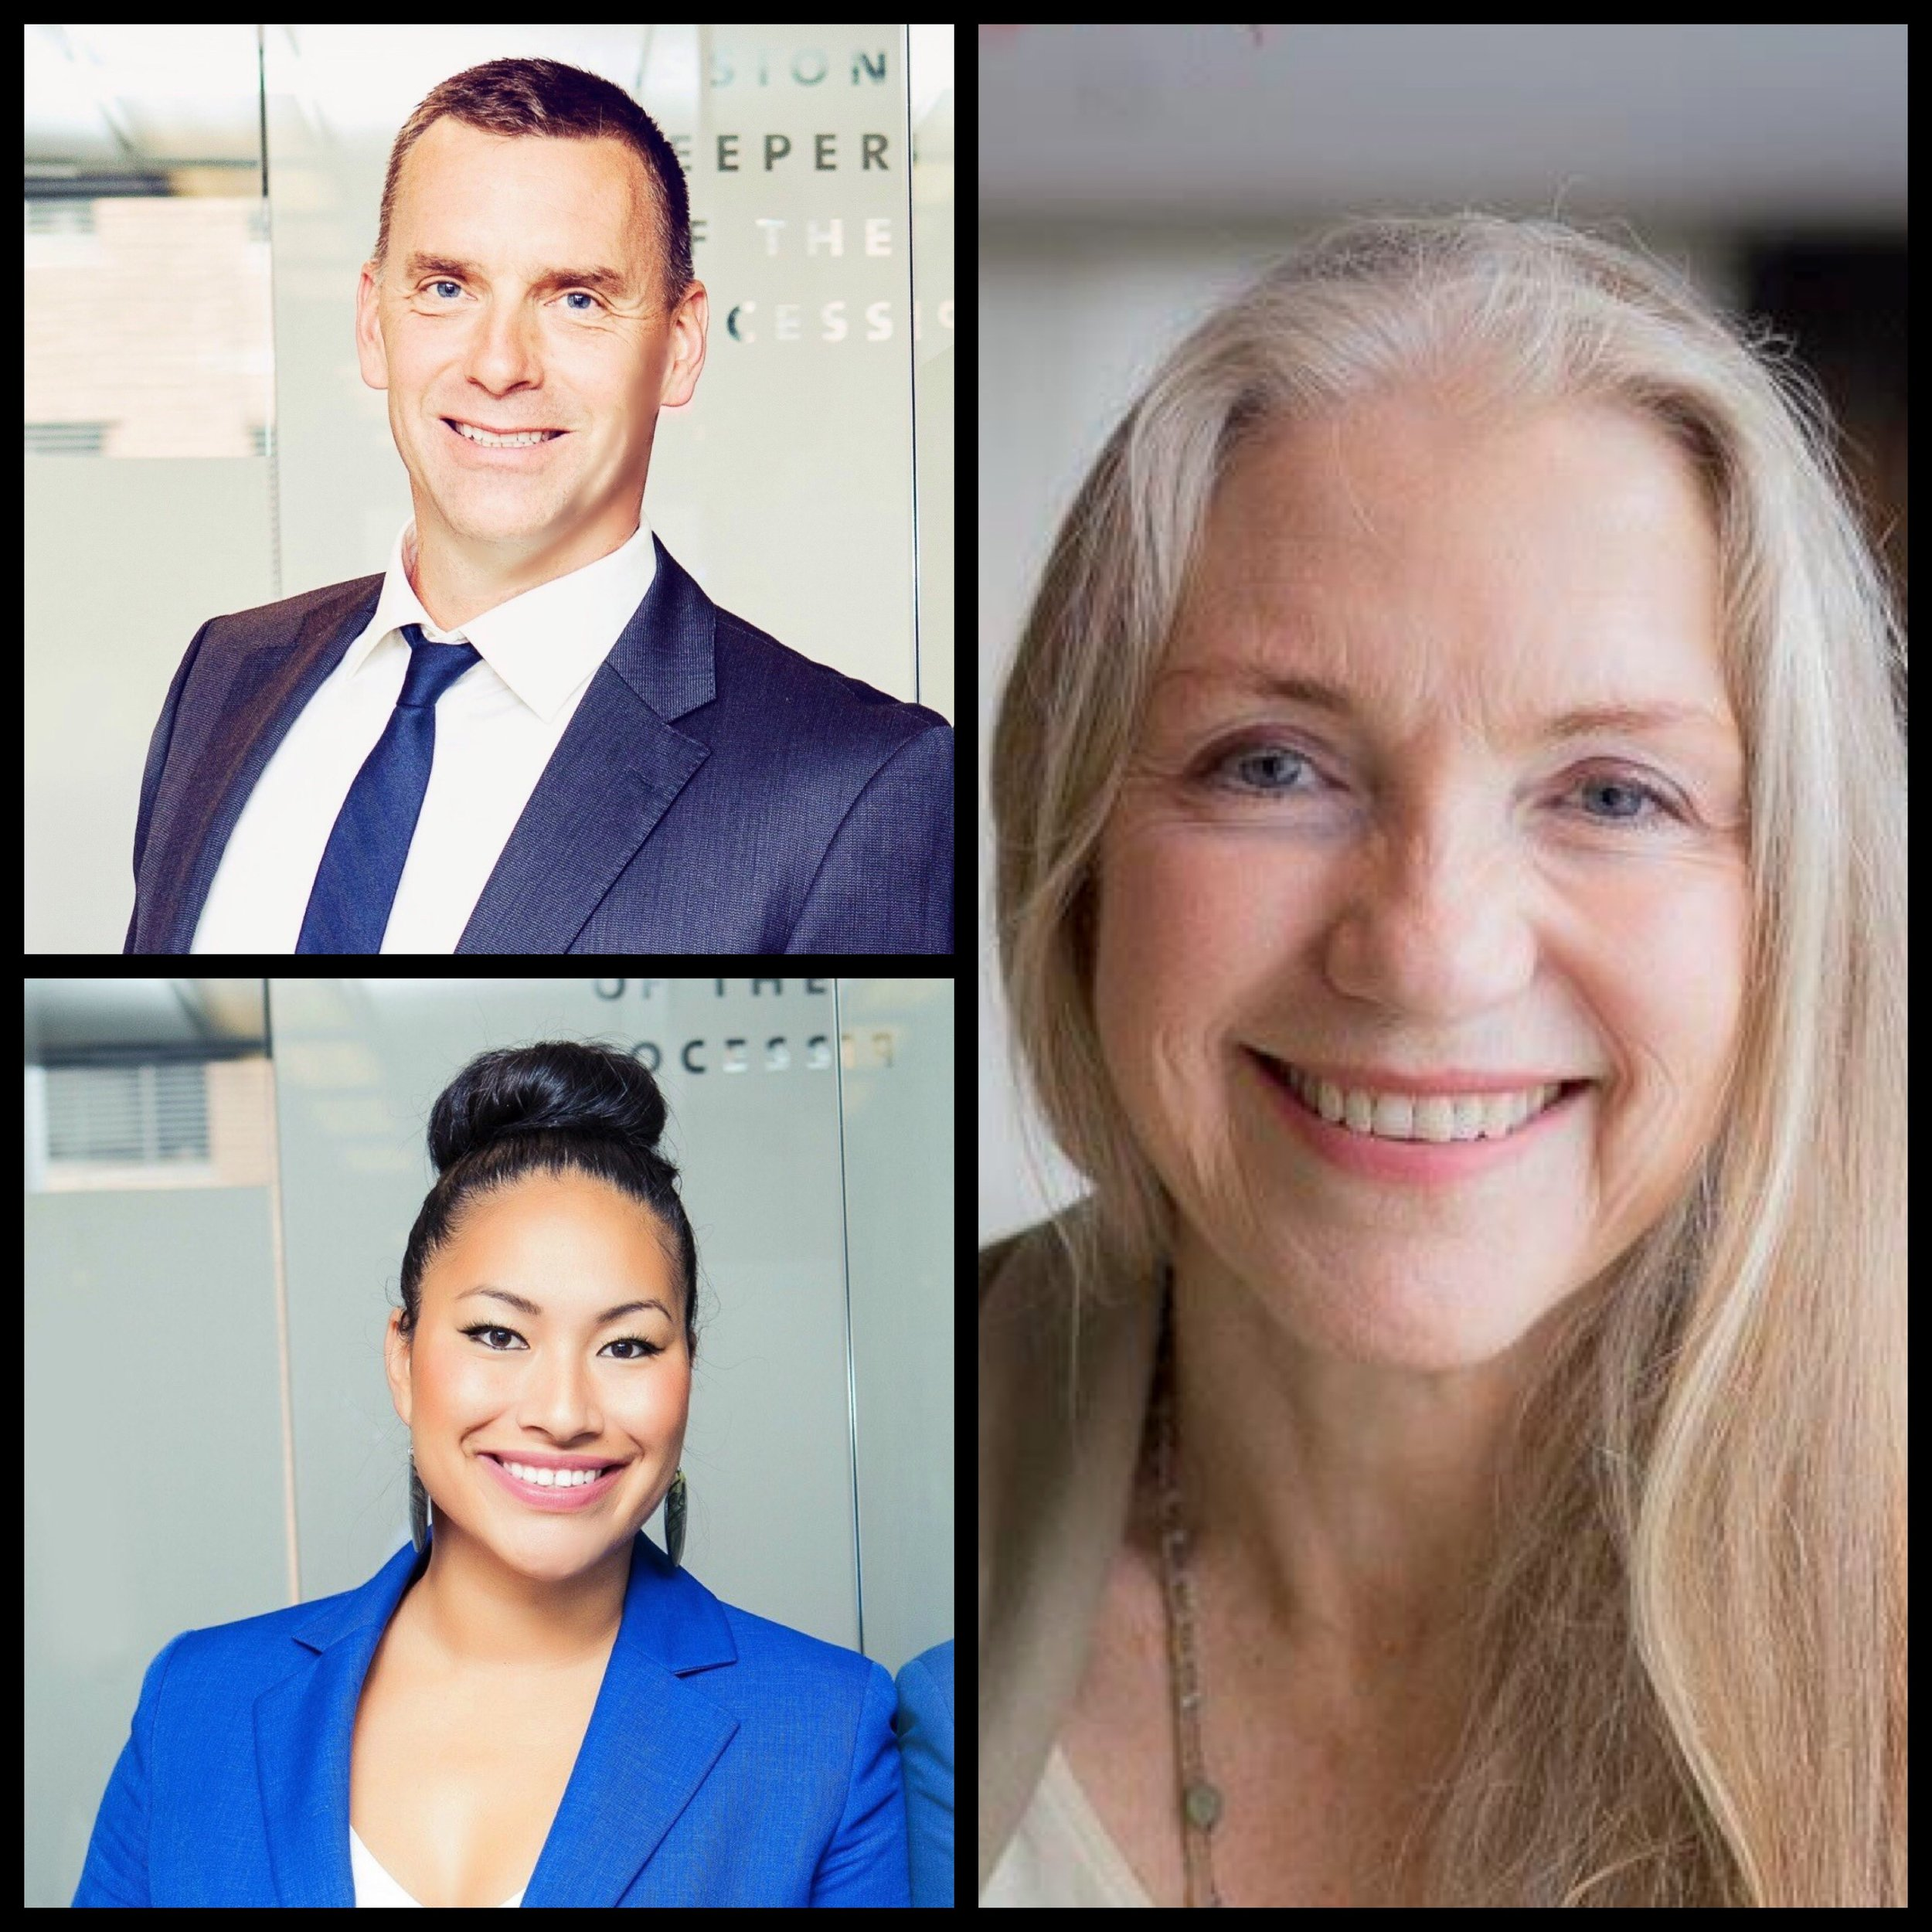 Pictured top left: Mark Smith - General Counsel for the British Columbia Treaty Commission. Pictured bottom left: Sashia Leung - Associate Director of Process at the British Columbia Treaty Commission. Pictured bottom right: Maori Land Court Judge Carrie Wainright.